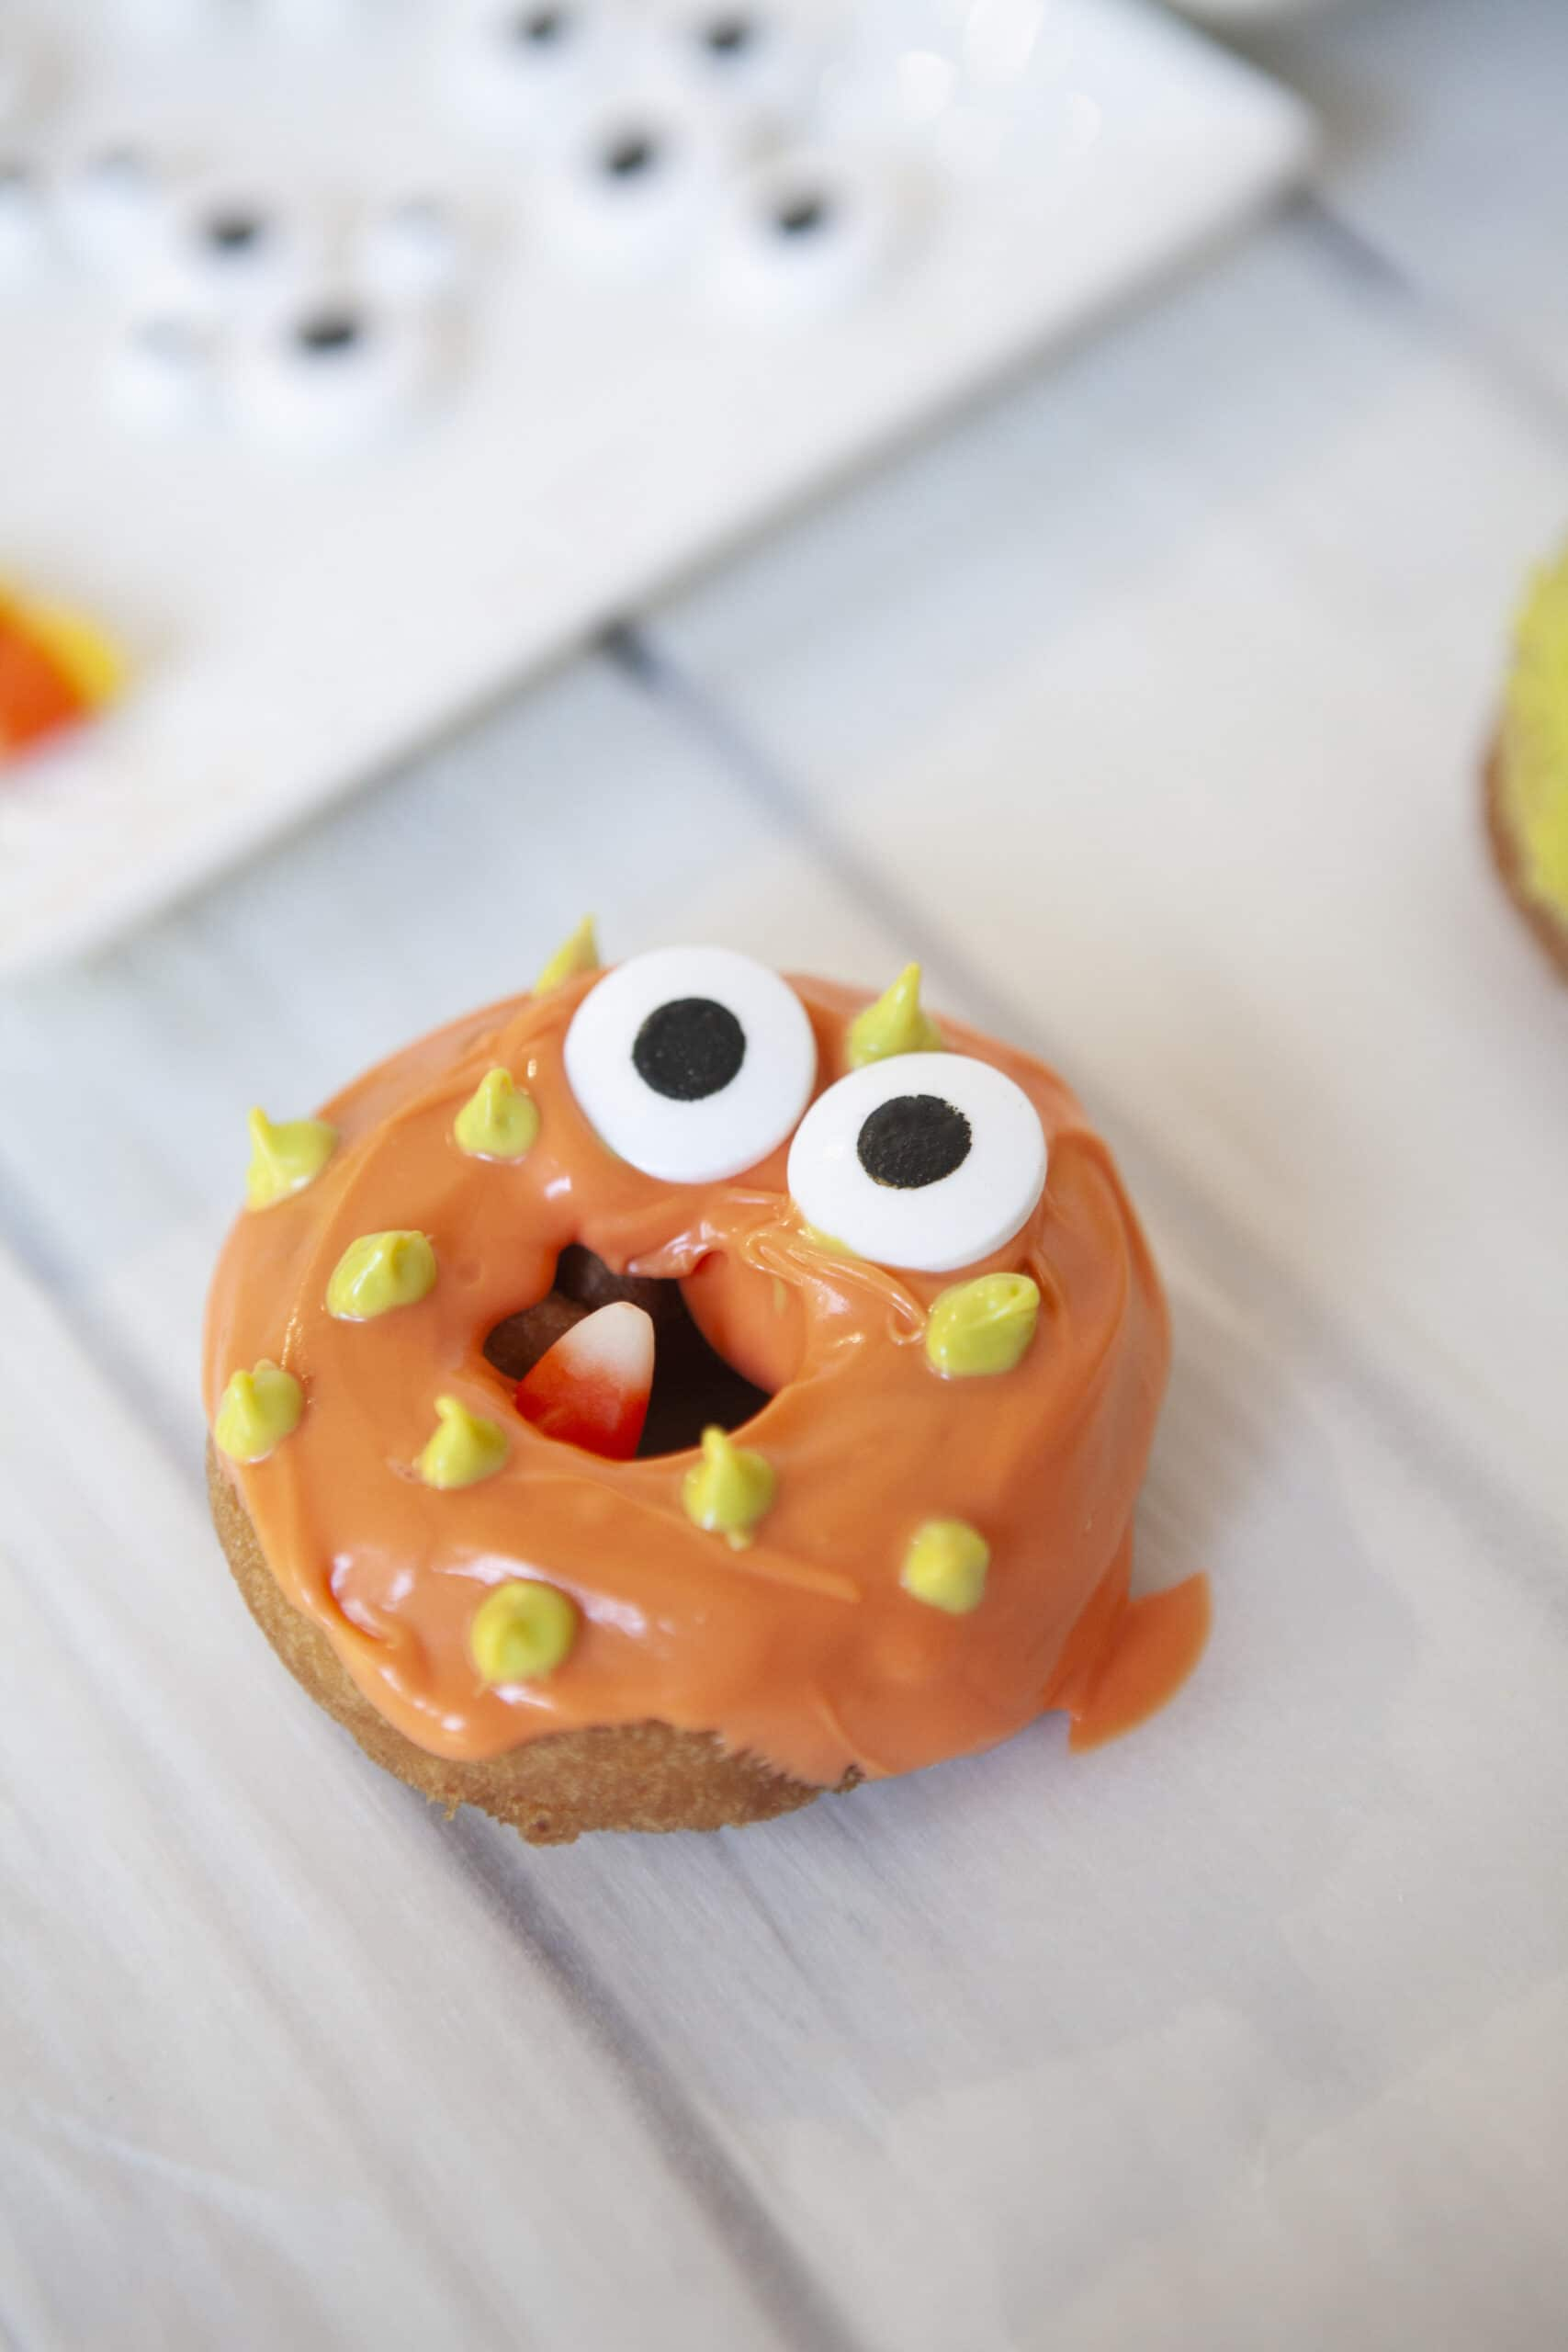 Monster Donuts Candy Corn Monster. Make these spooky cute Monster Donuts for your next Halloween event. Made with your favorite donuts as a base, you can create and decorate vampires, mummies, and other iconic edible Halloween monsters.